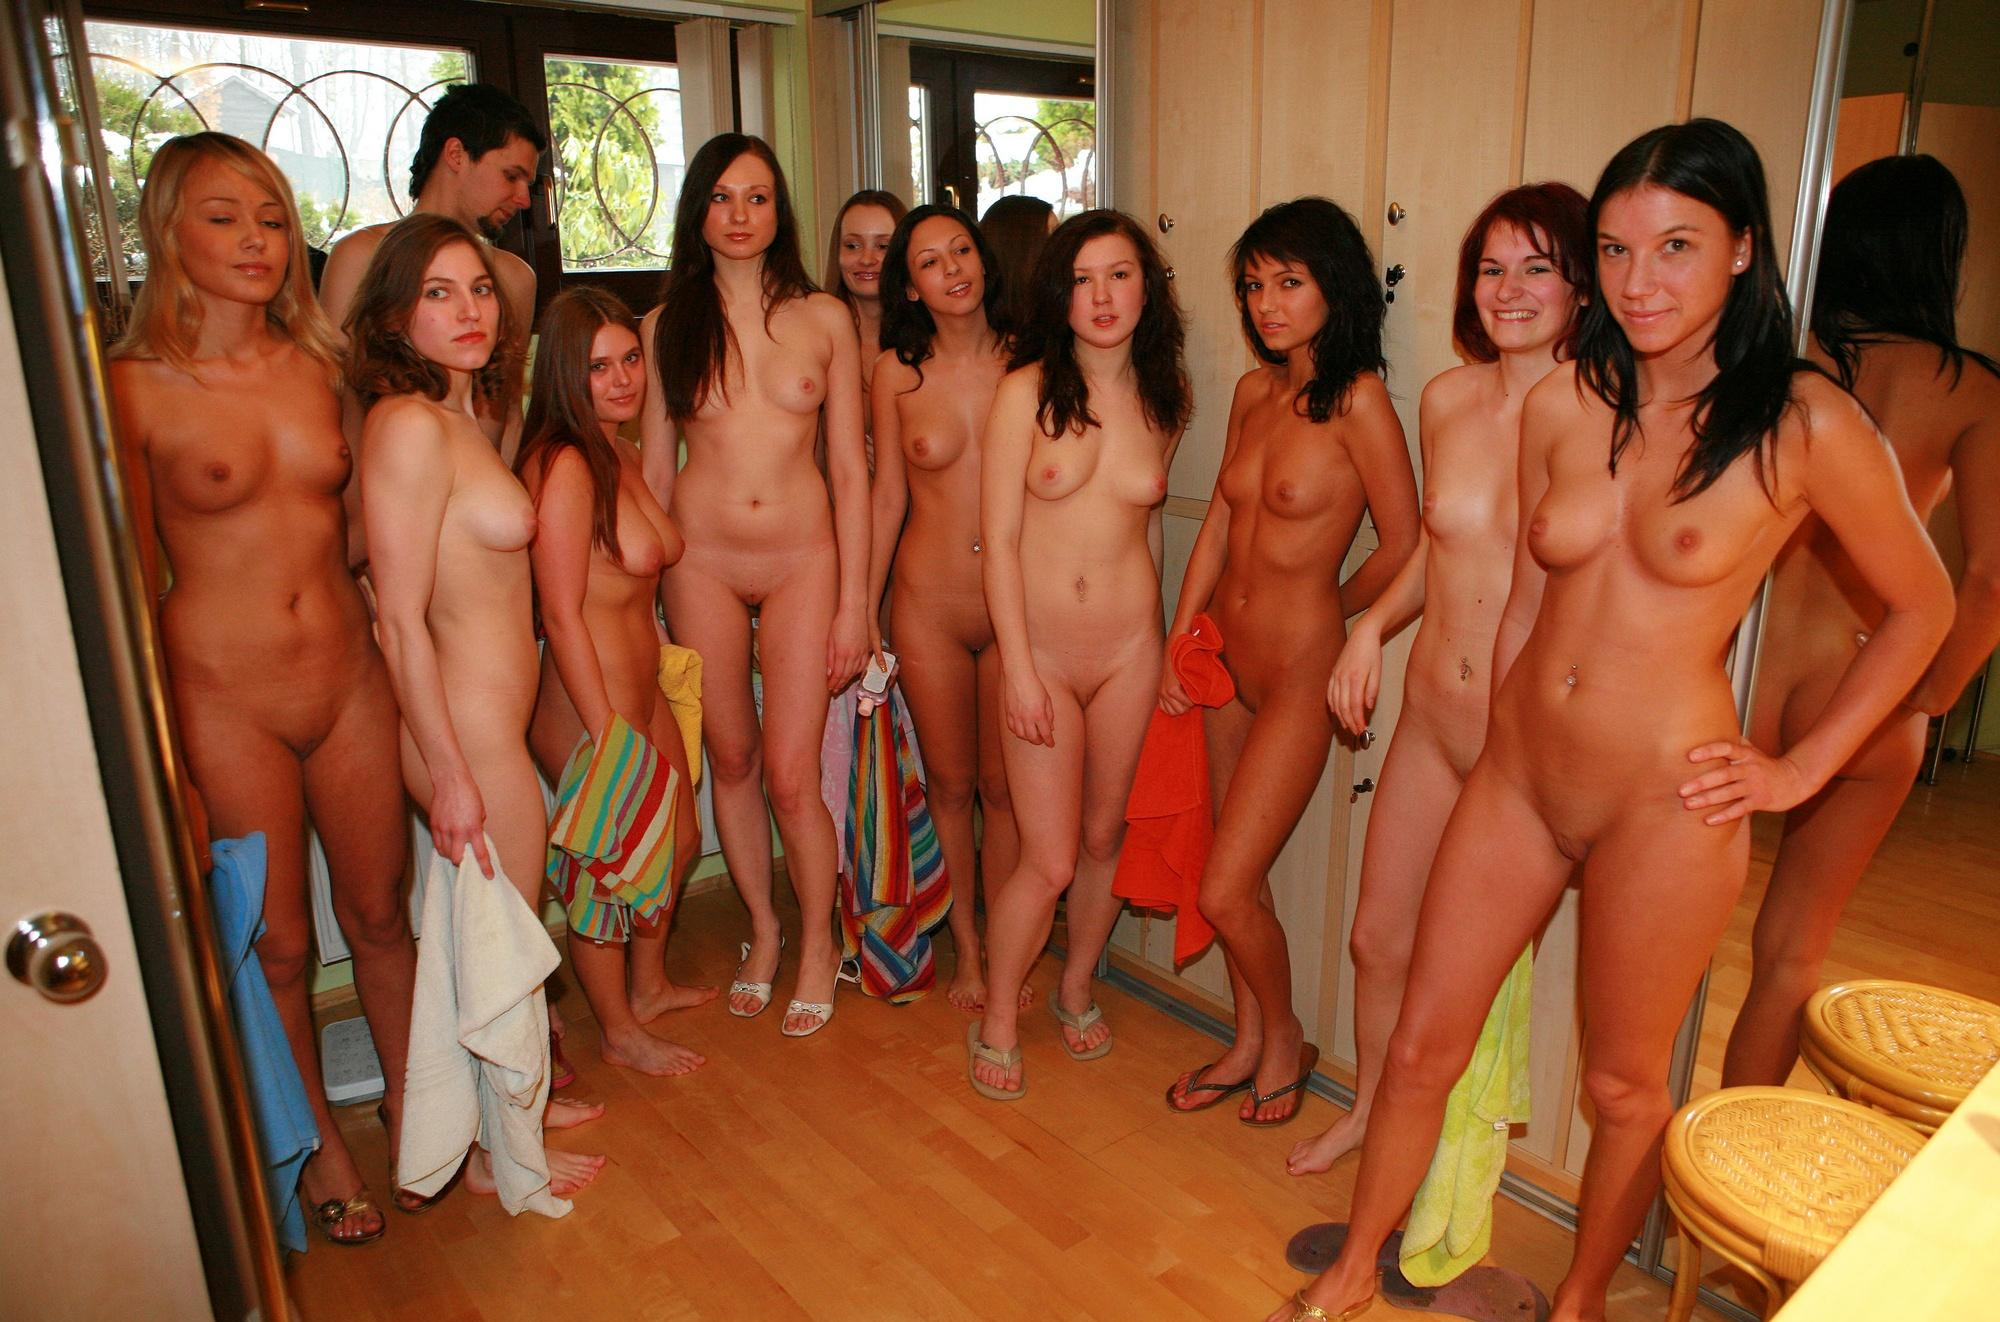 That Naked girls in sauna with